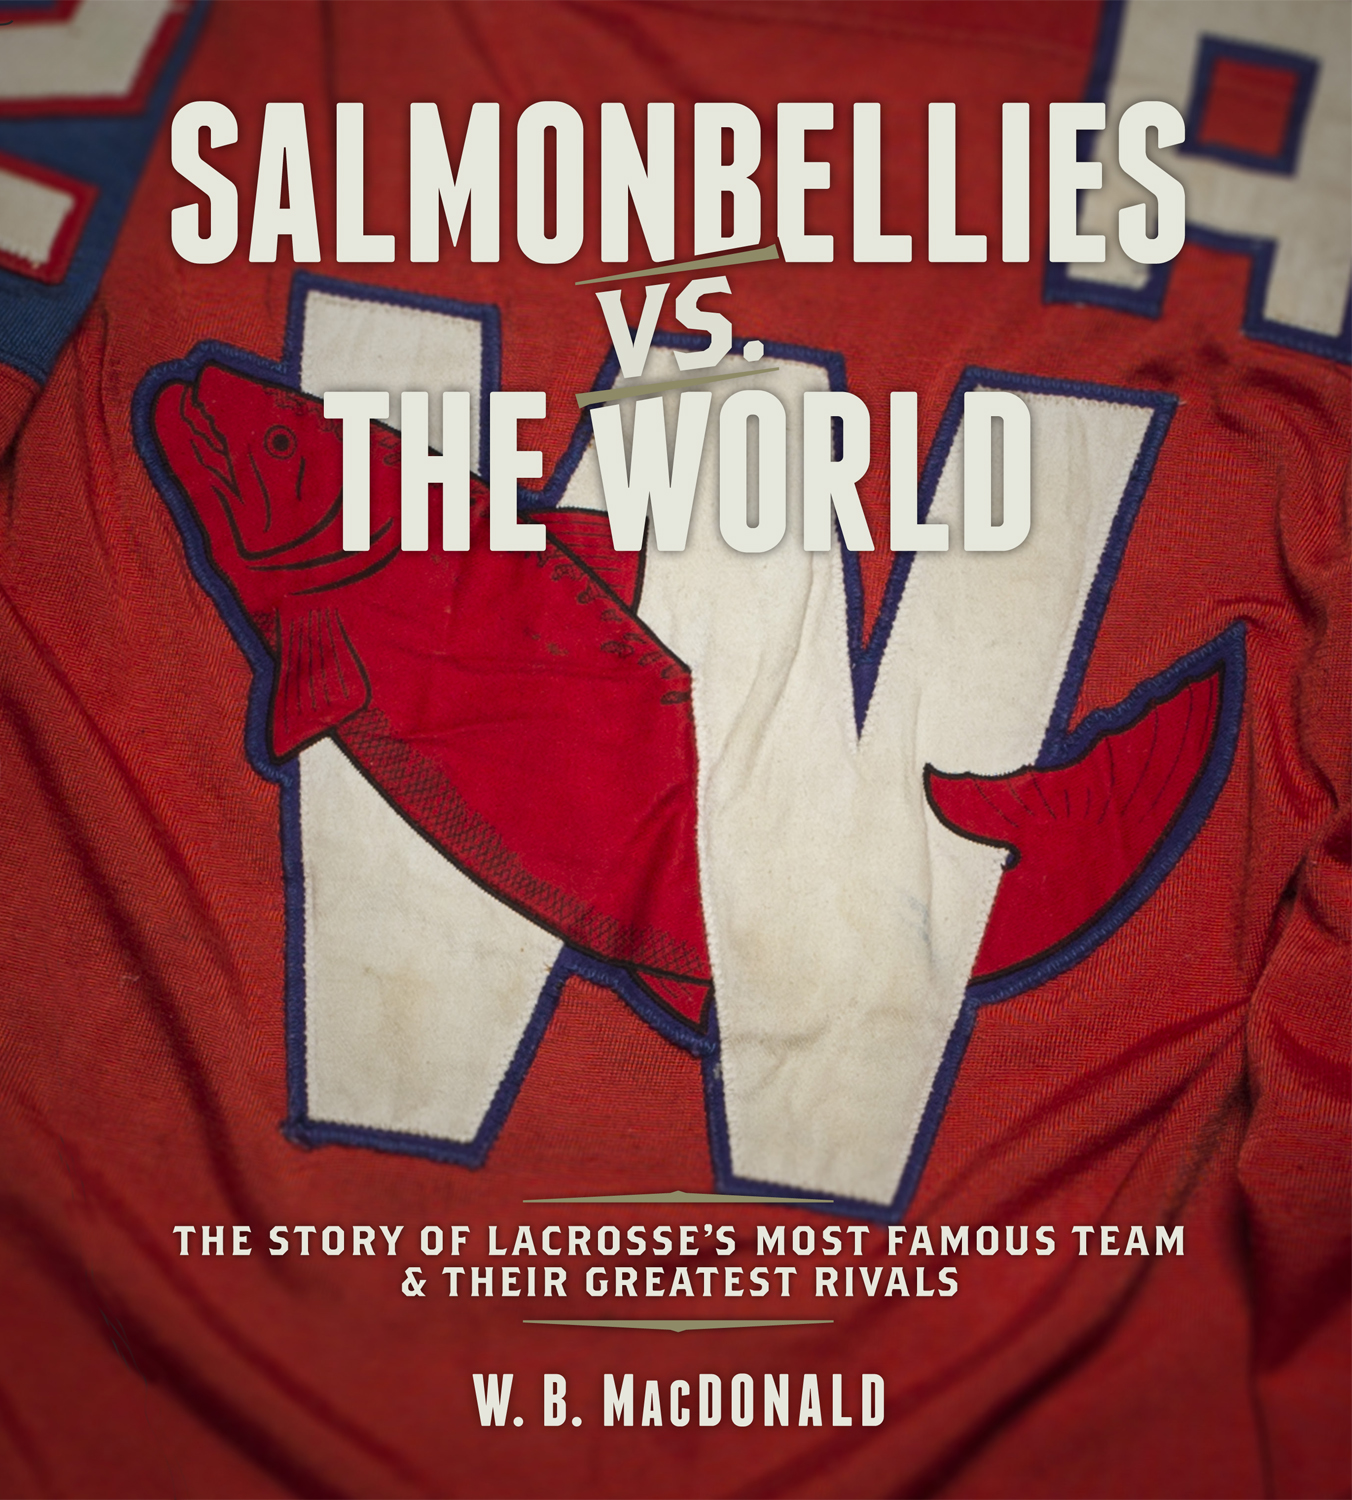 Salmonbellies vs. the World